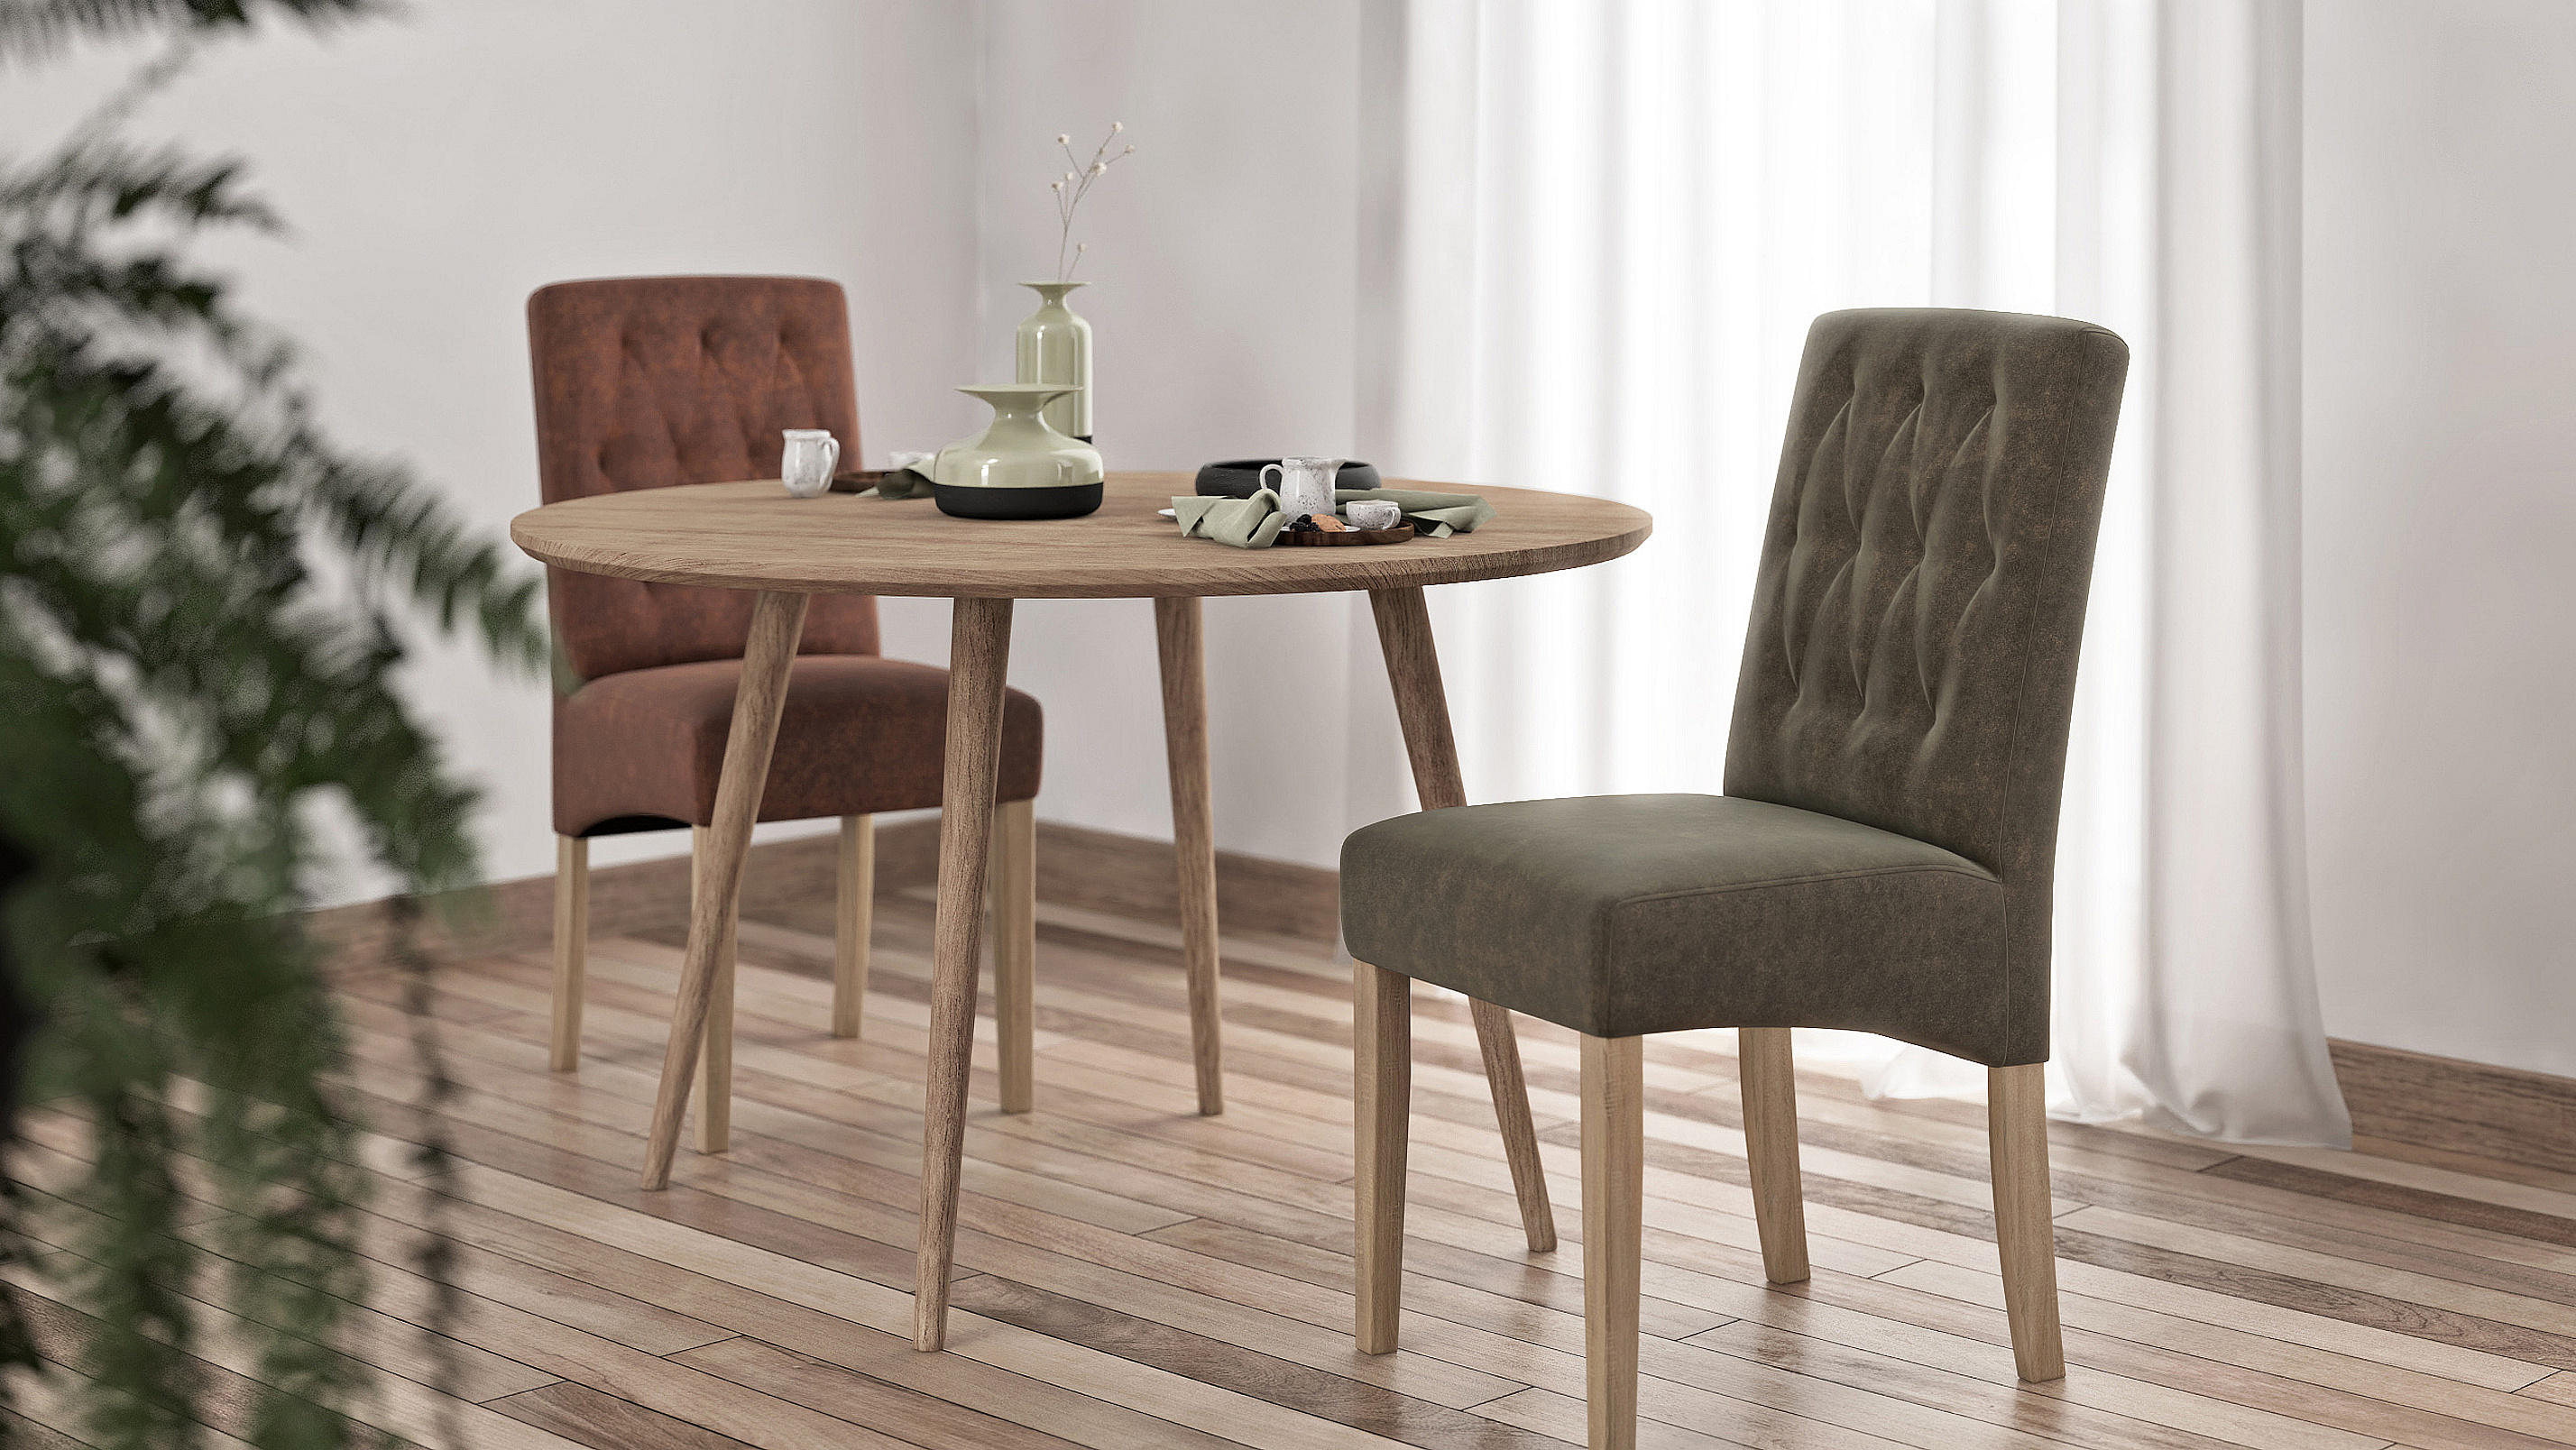 Stina chairs close to table.